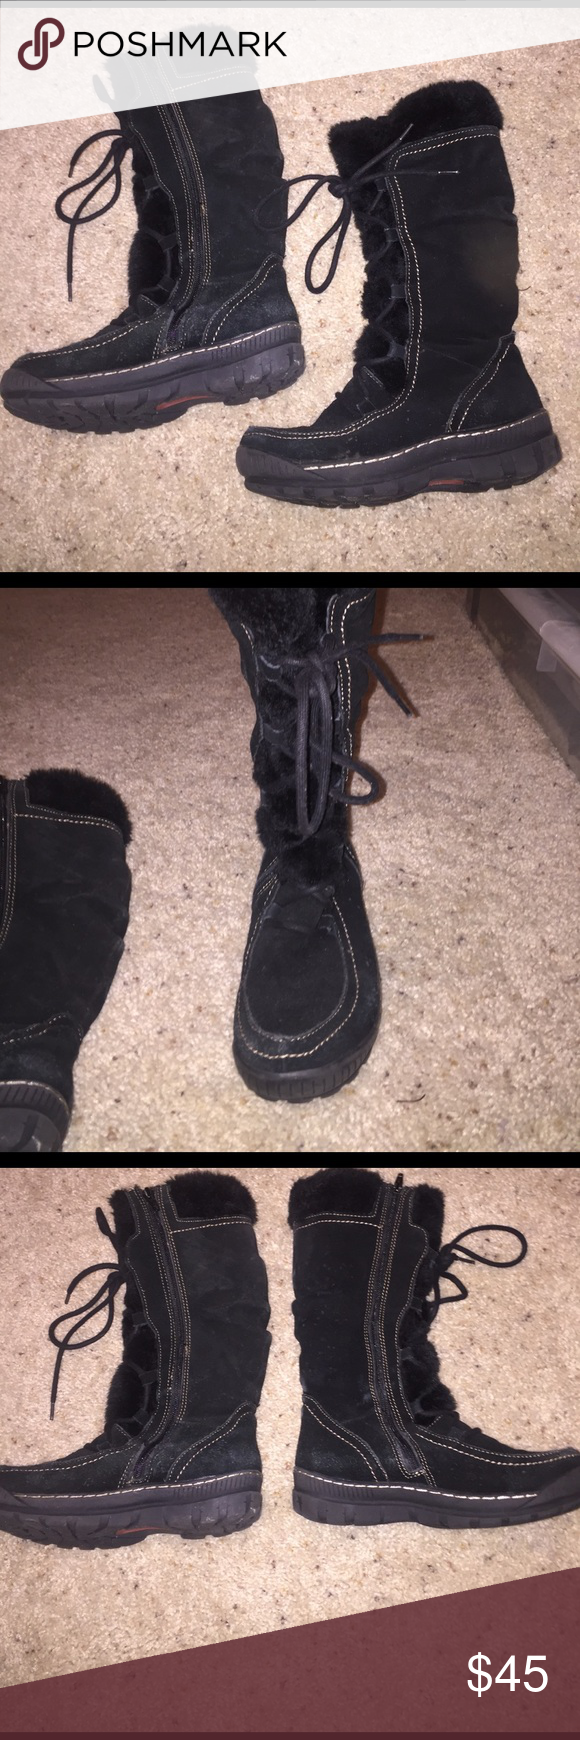 BareTraps Snowboots BareTraps stay dry system snow boots. Do not live where it snows anymore so no longer need these boots. Zip up and front ties to make shoes nice and snug! Faux fix inside to keep feet warm! No trades or holds. BareTraps Shoes Winter & Rain Boots